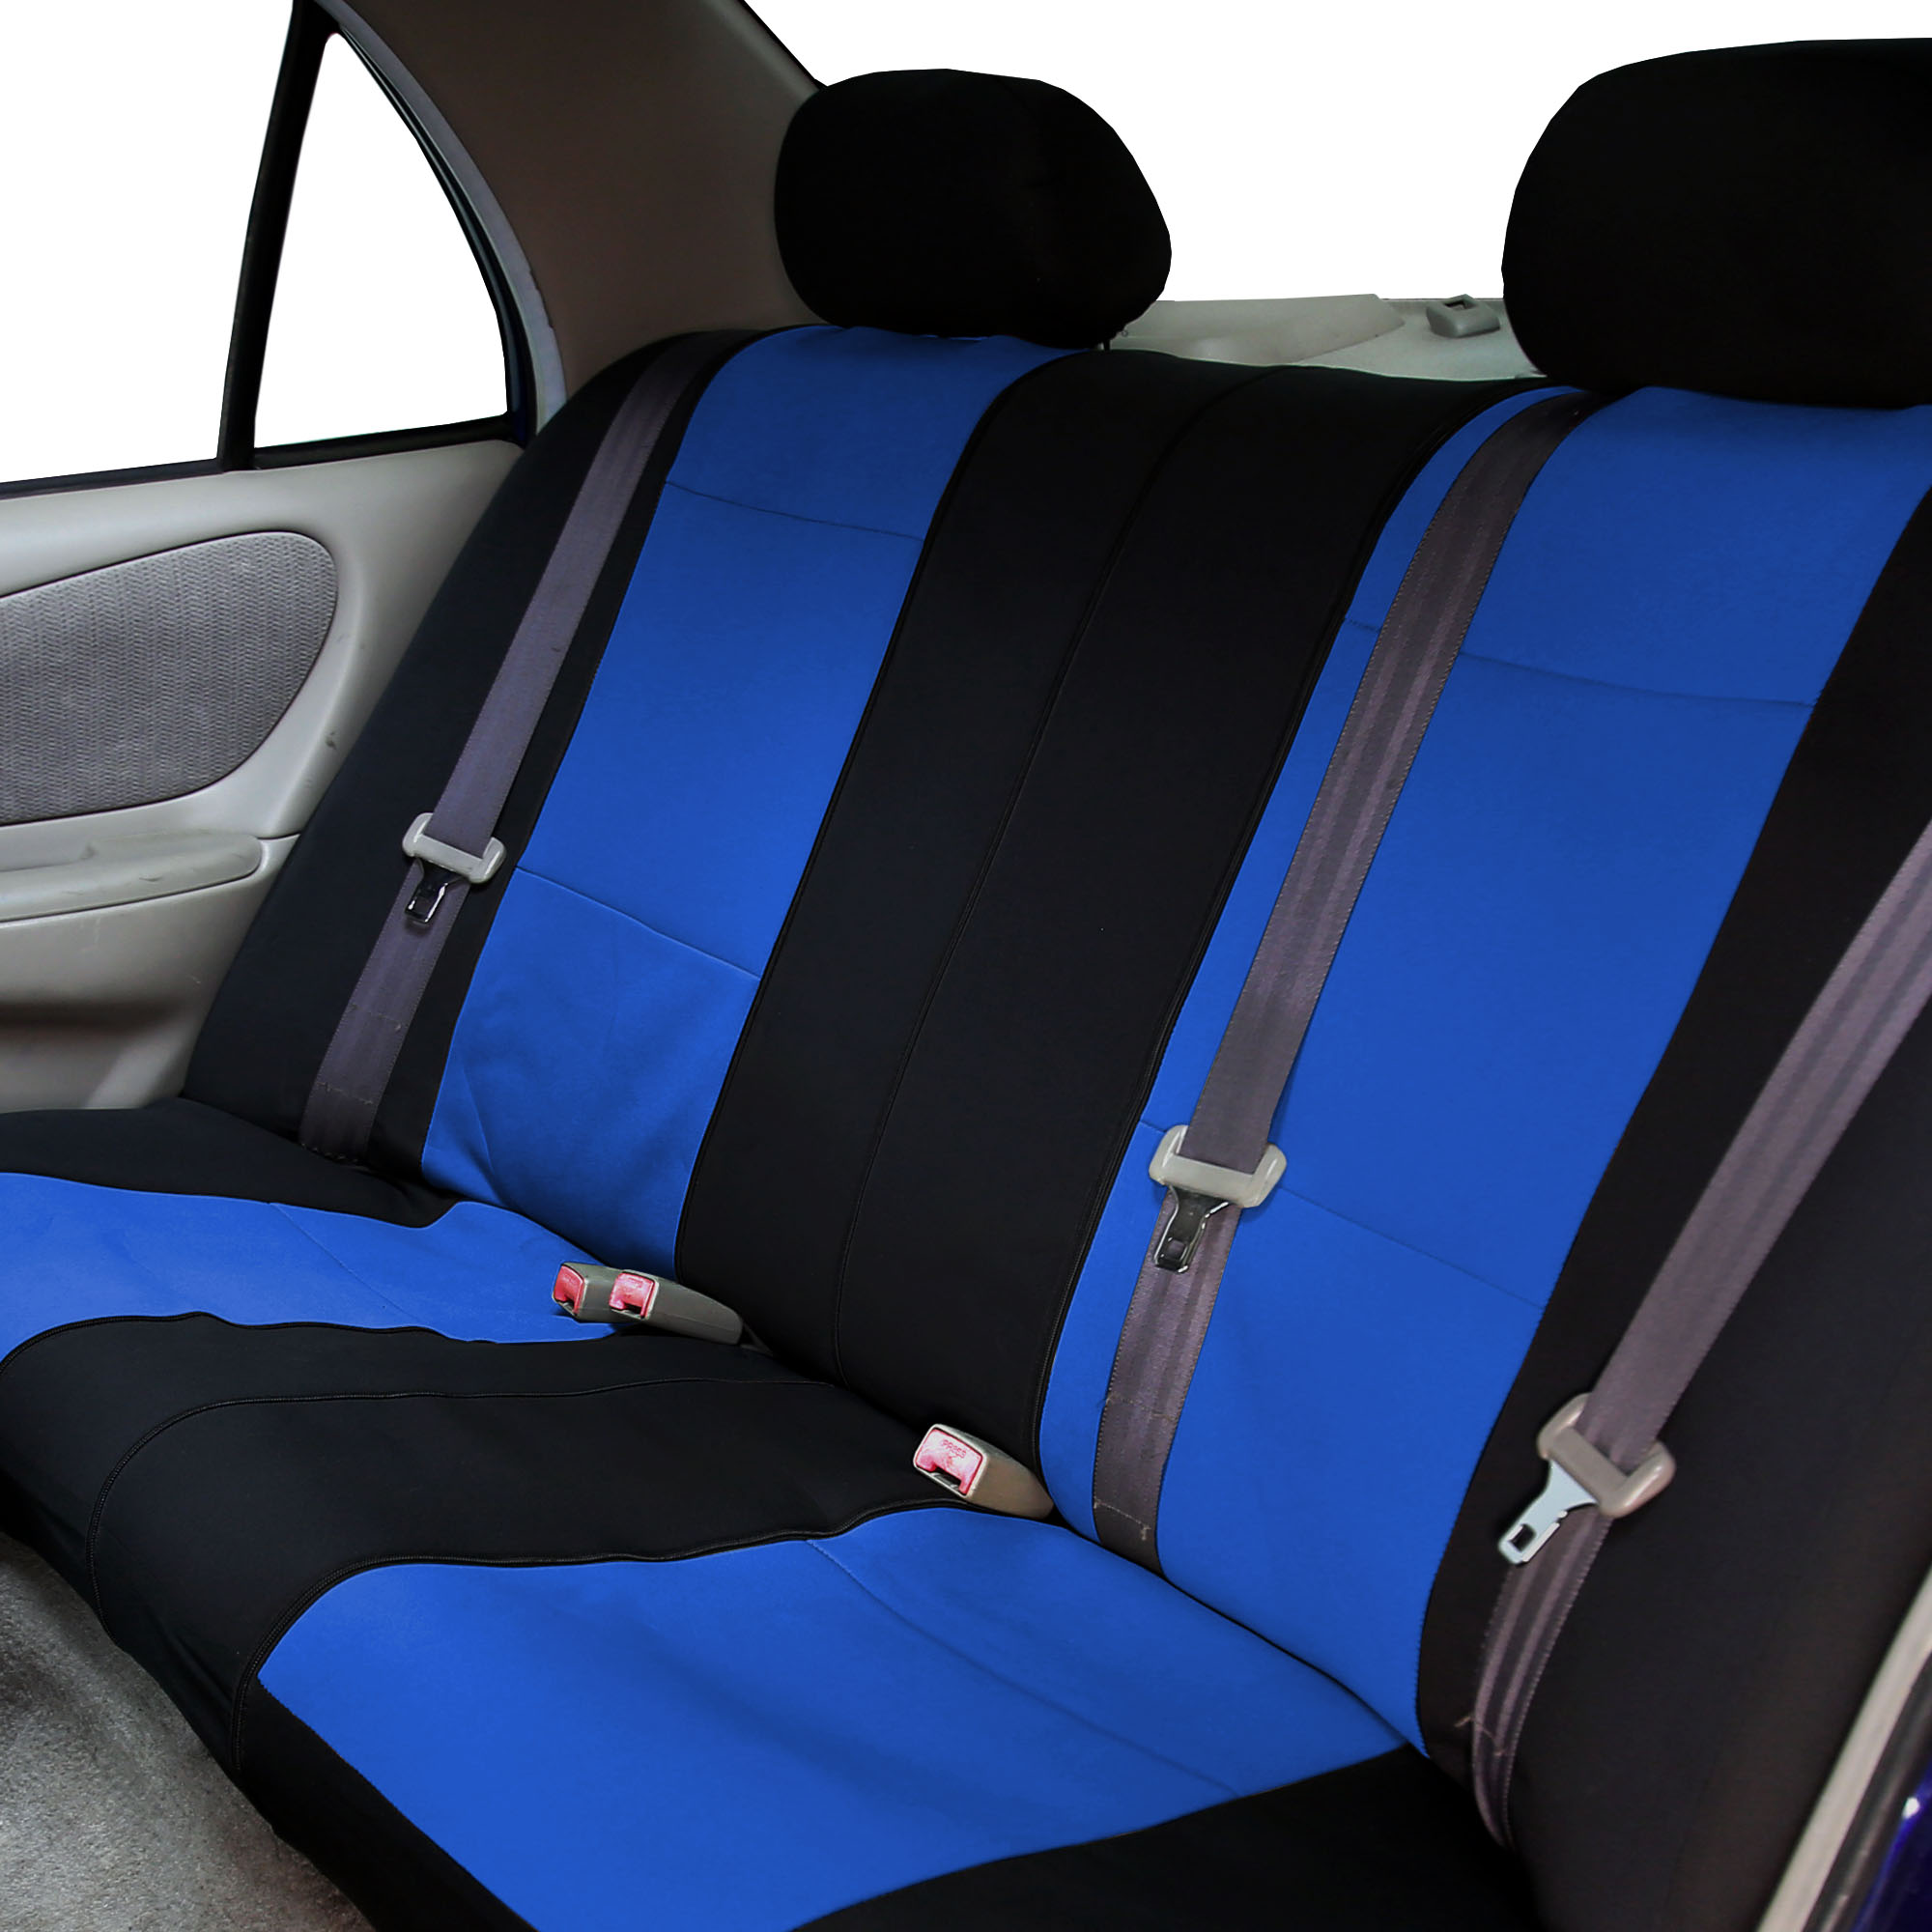 Car-Seat-Cover-Neoprene-Waterproof-Pet-Proof-Full-Set-Cover-With-Dash-Pad thumbnail 30